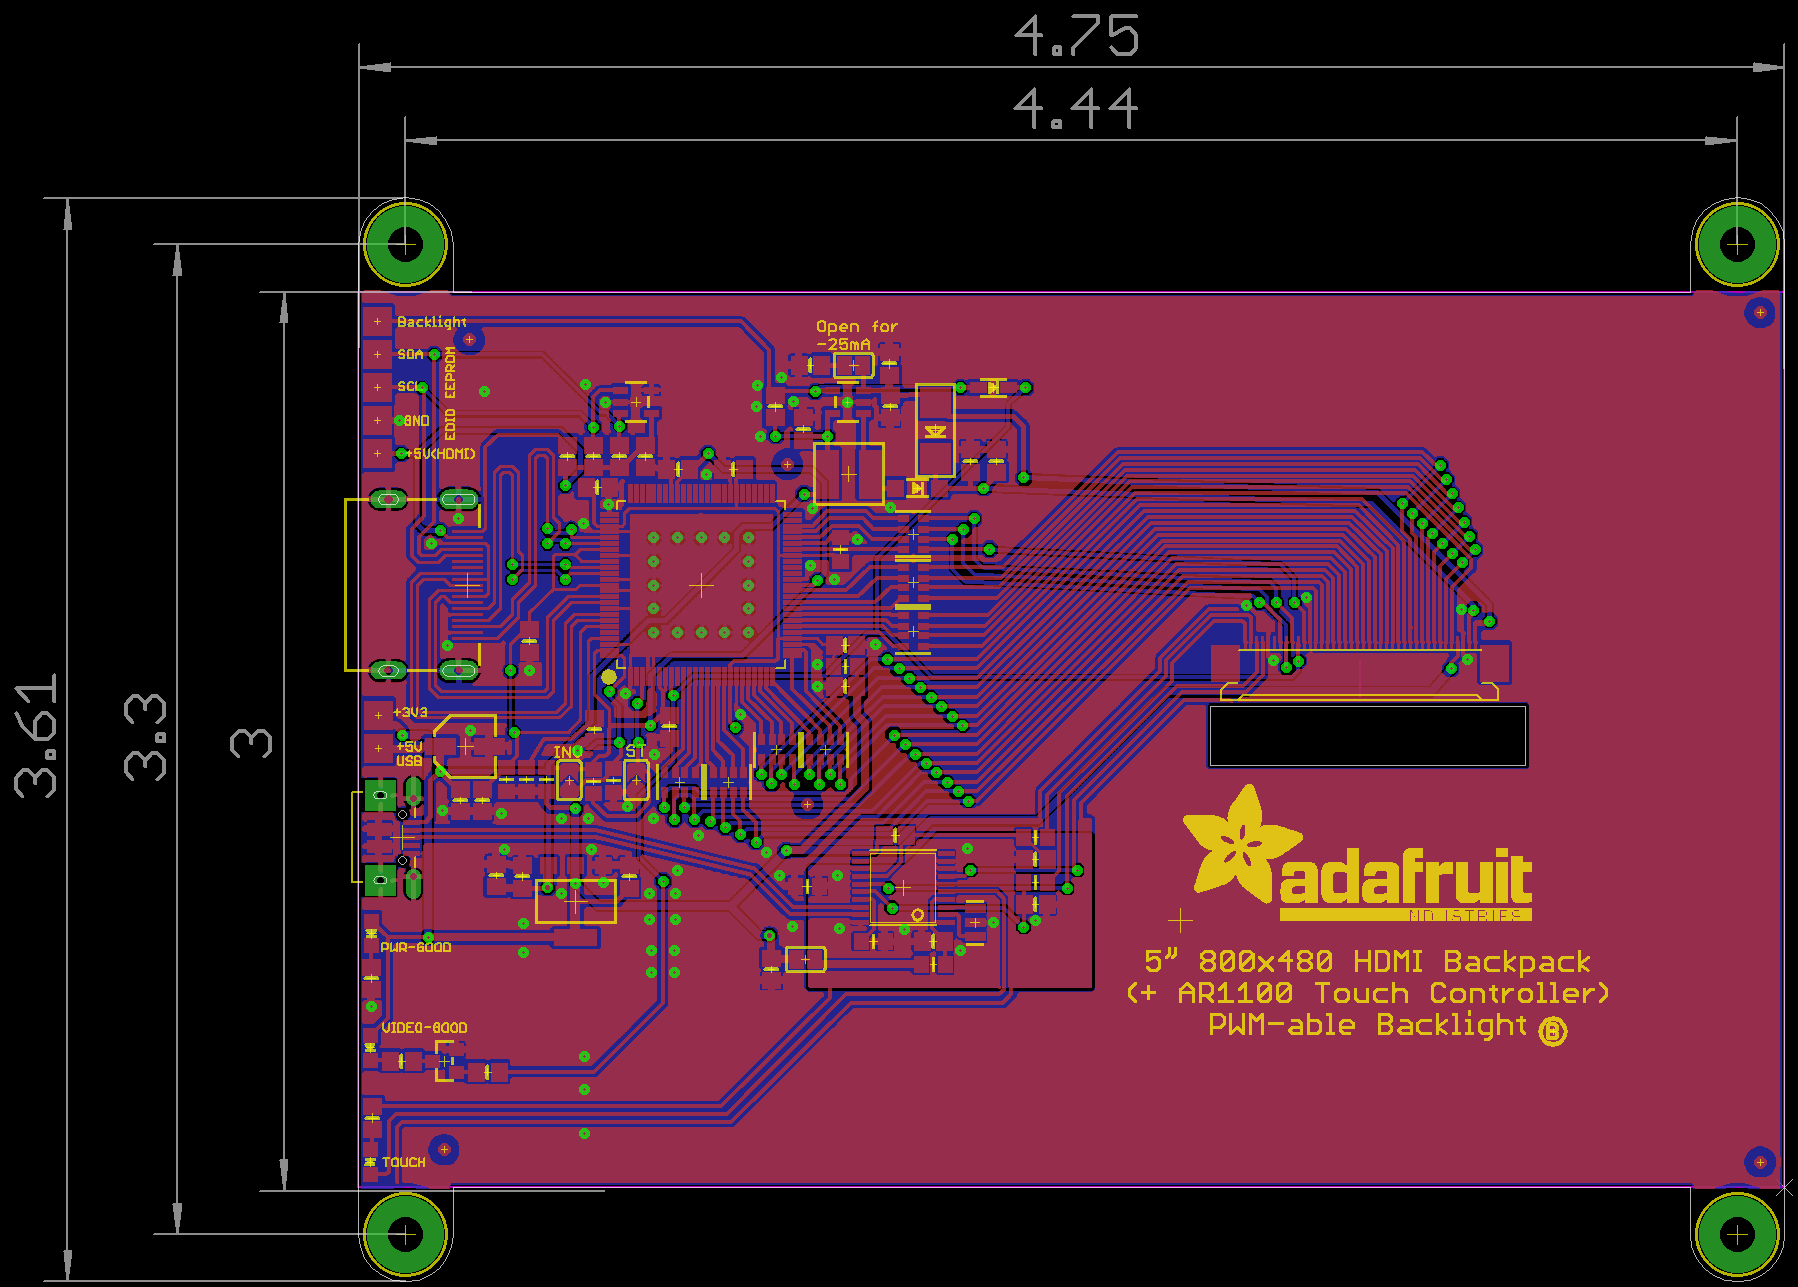 adafruit_products_layout.png